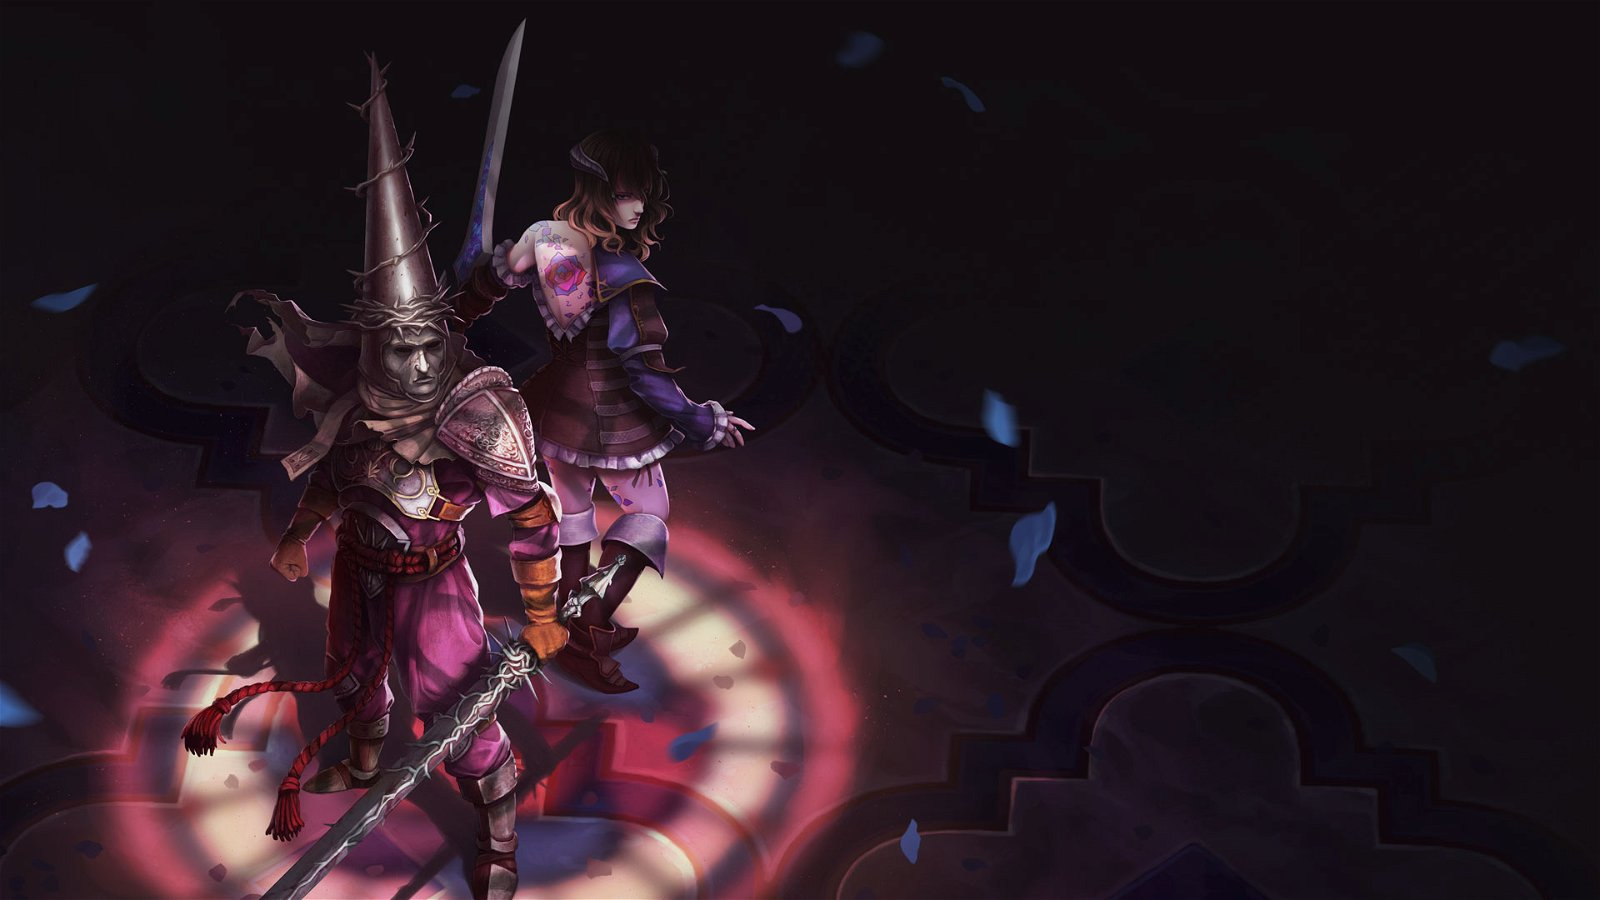 Bloodstained Joins Blasphemous For A Gothic Crossover February 18 3